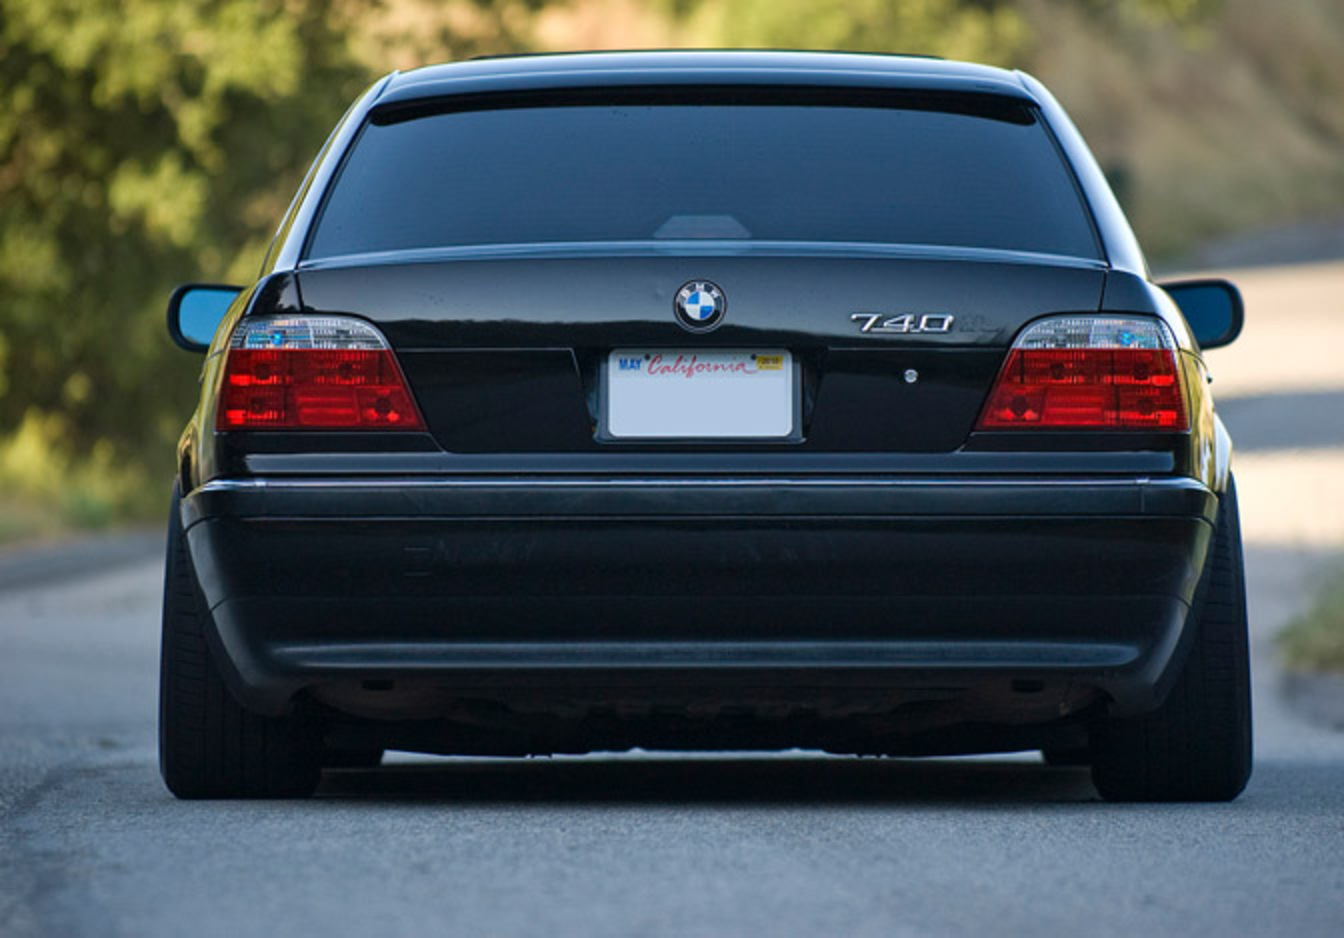 I first saw this slammed E38 BMW 740iL luxury sedan at the Bimmerfest in